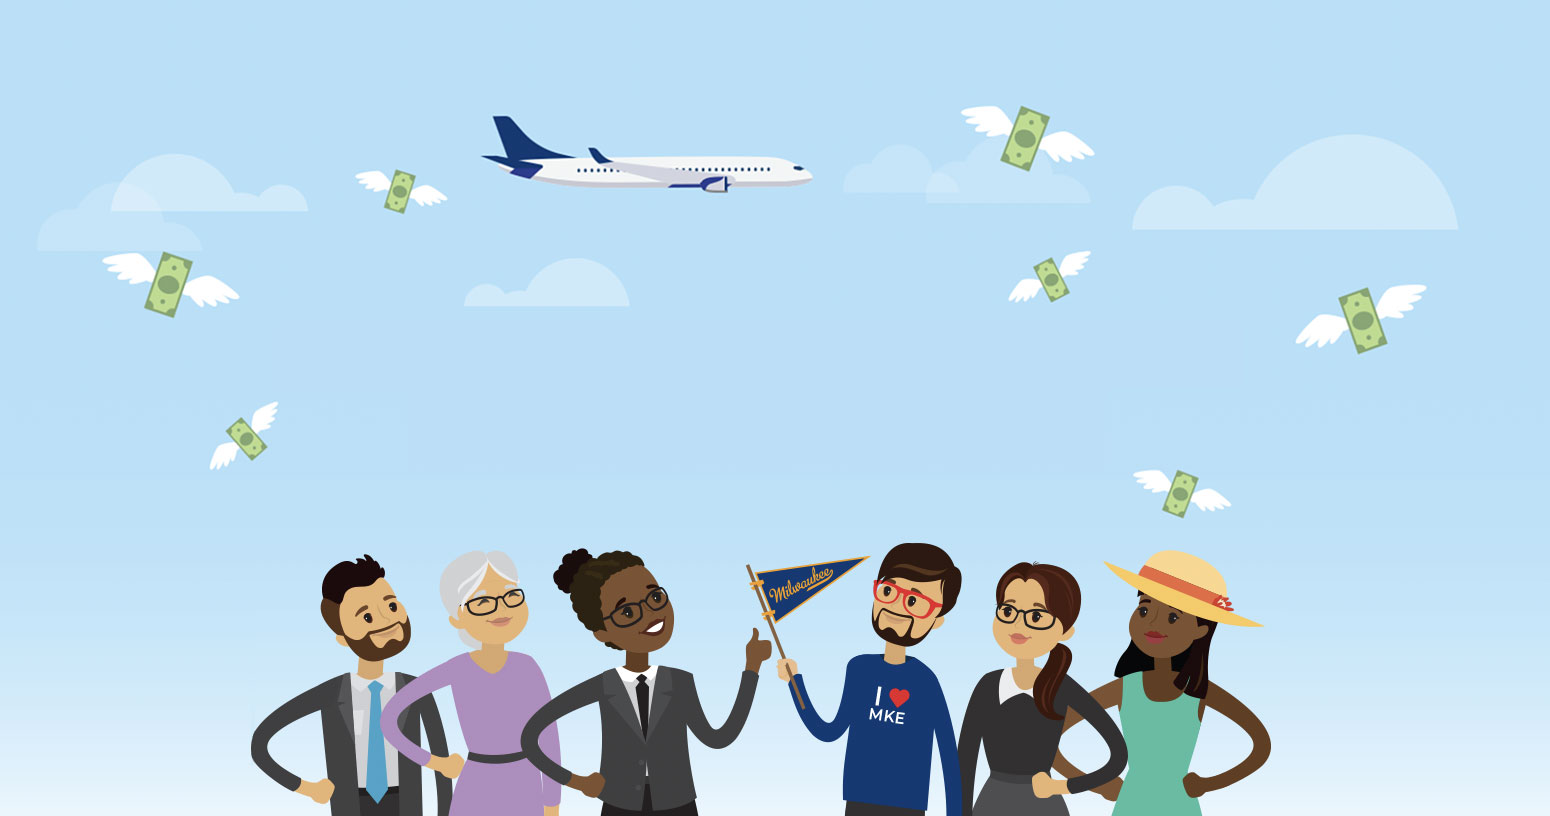 Illustration of airplane and people